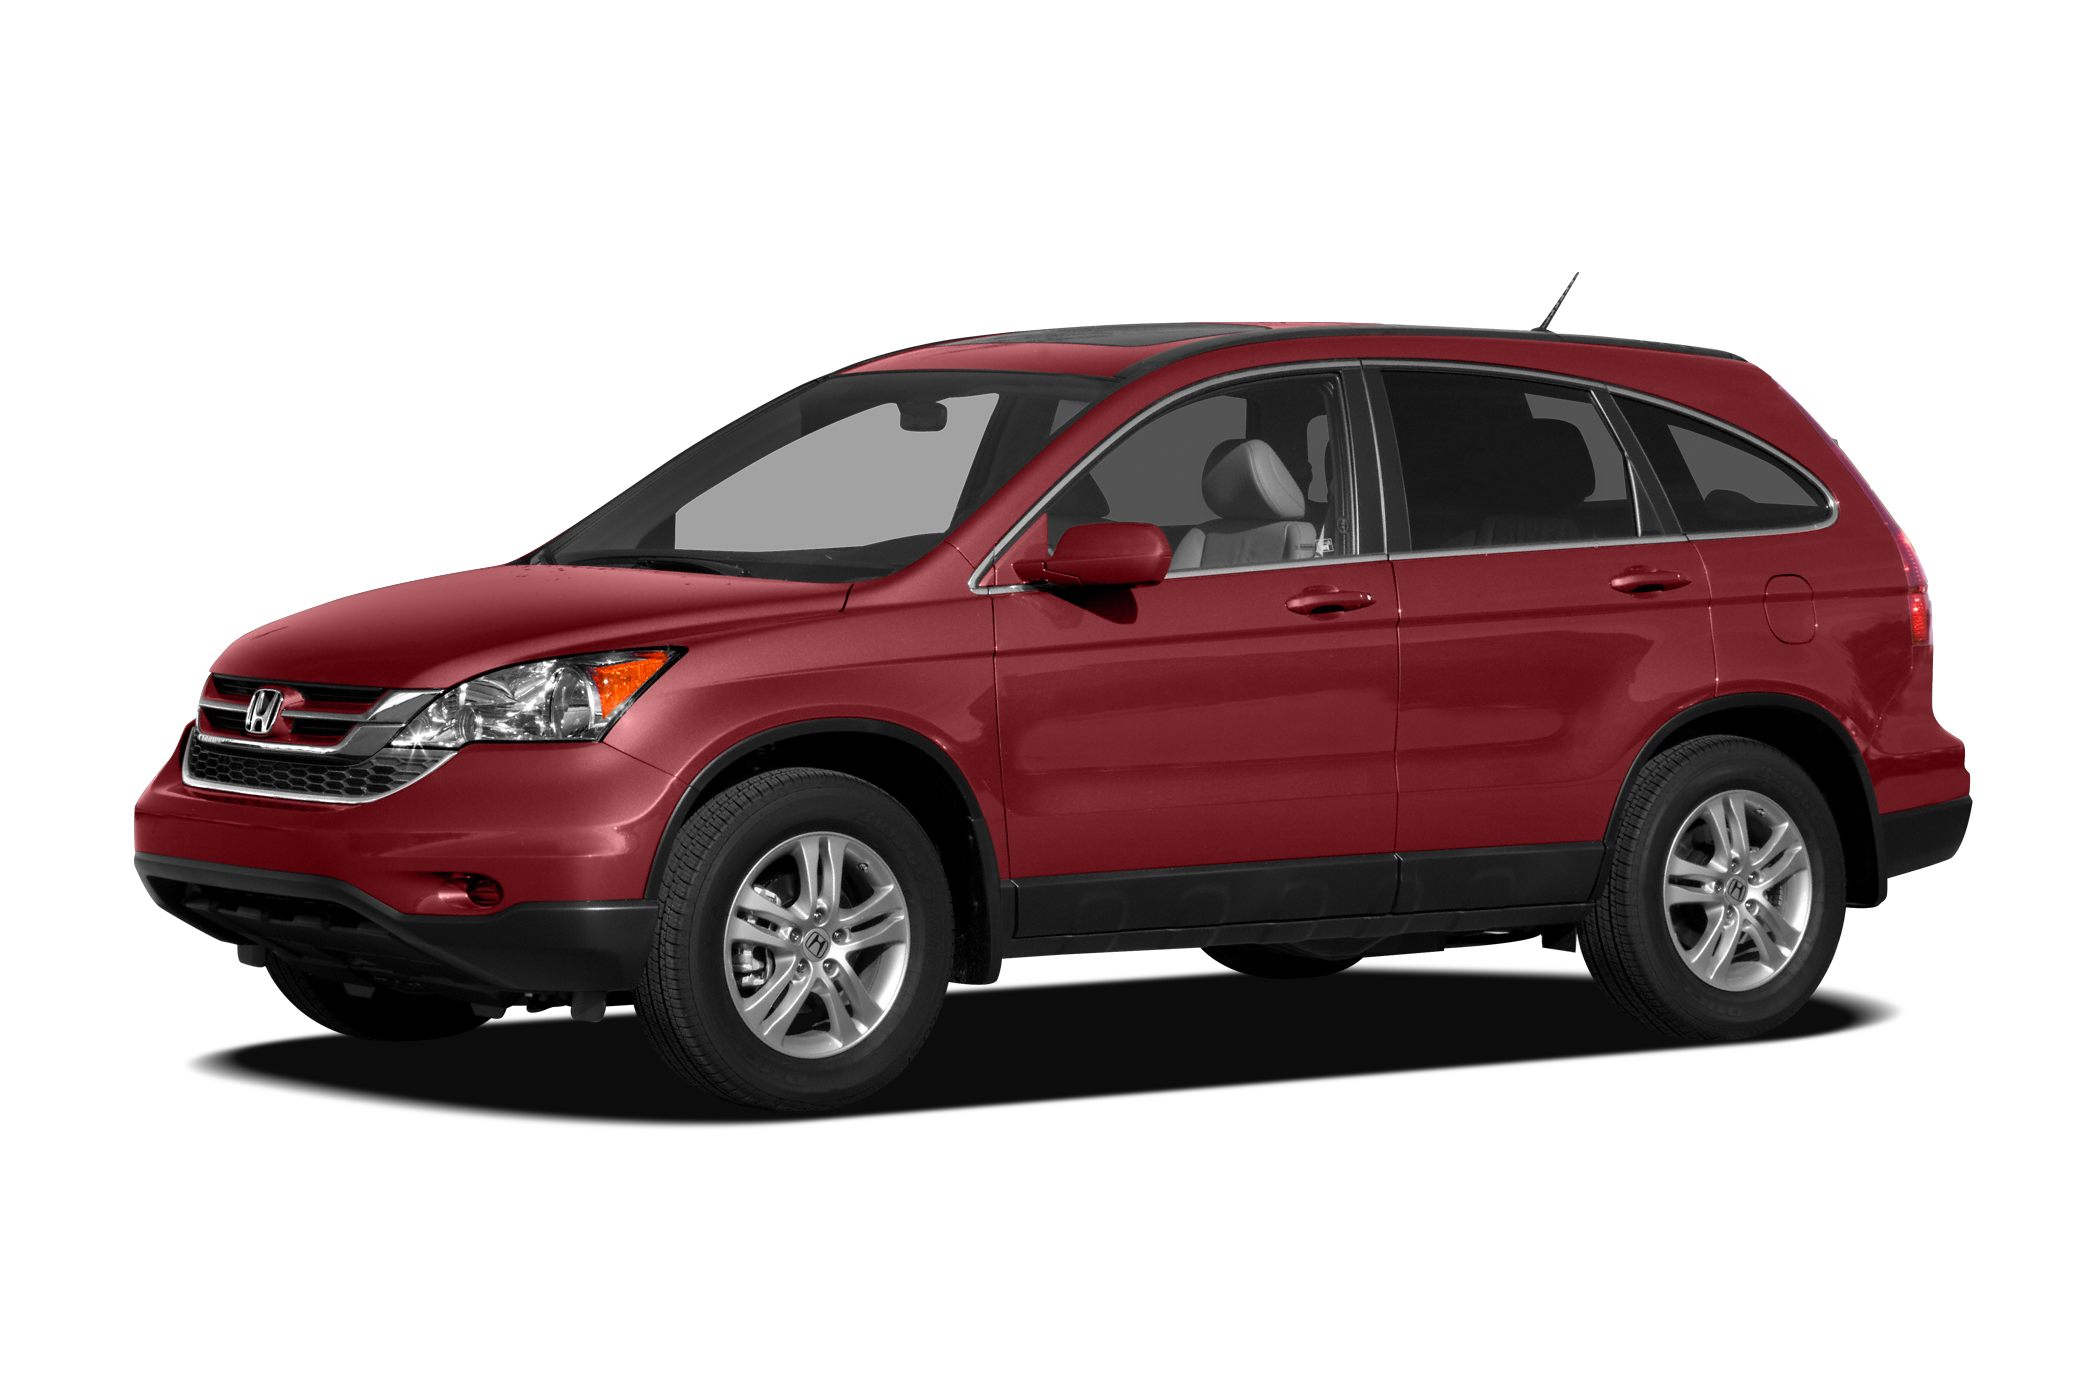 2010 Honda CR-V EX SUV for sale in Montgomeryville for $0 with 59,737 miles